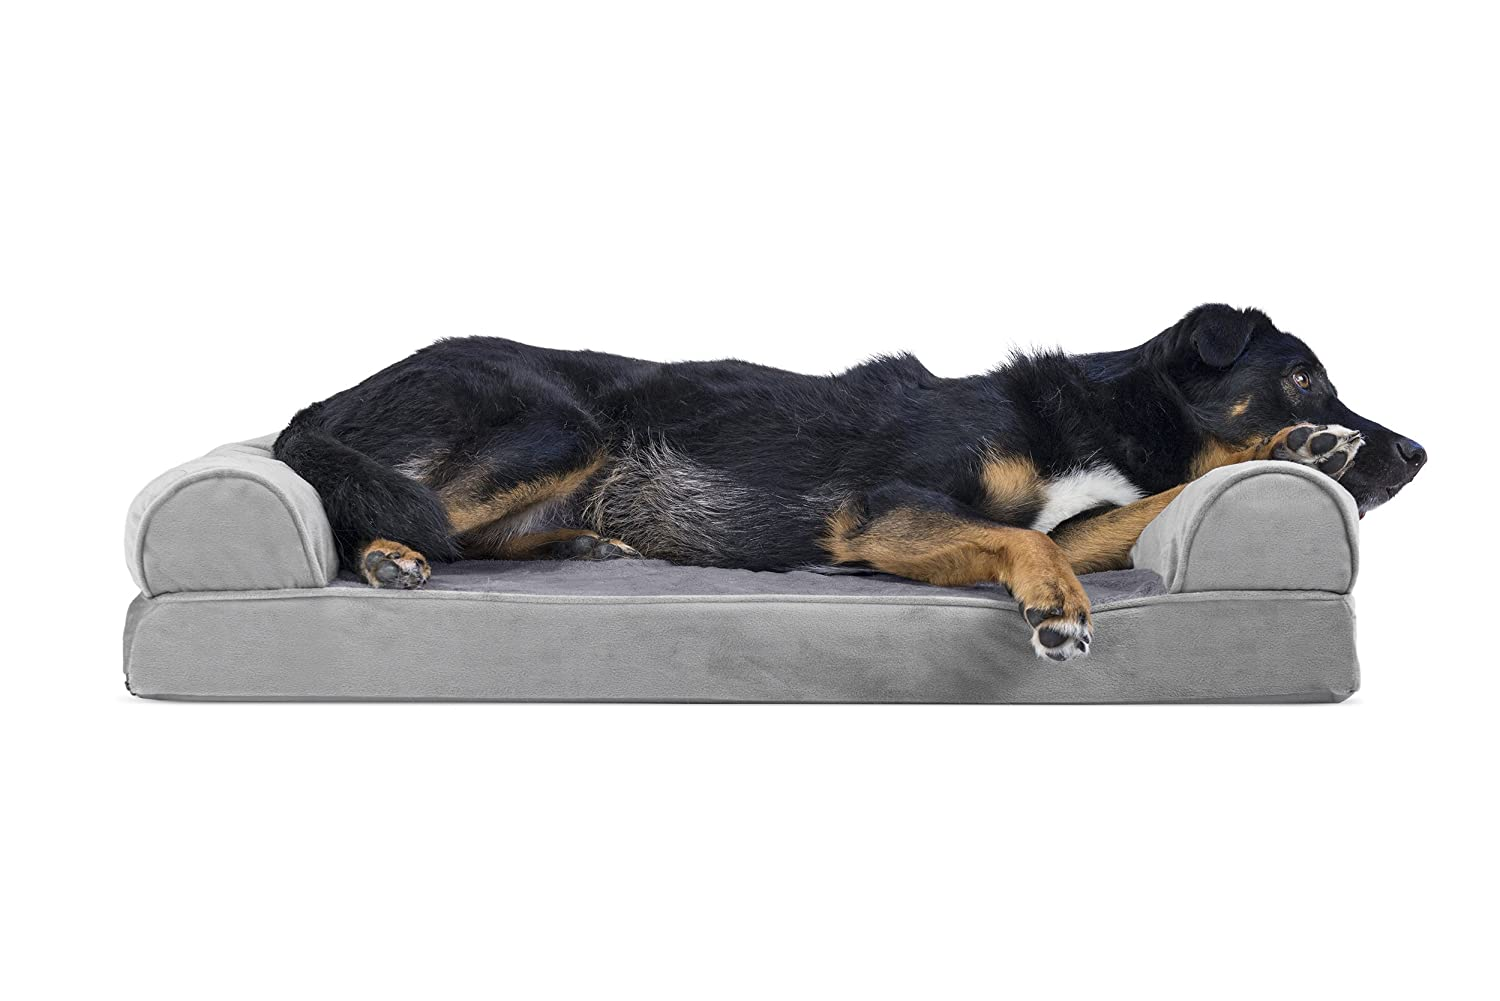 Smoke G  LargeFurHaven Gel Foam Quilted Dog Couch Sofa Bed for Dogs and Cats, Silver G , Large